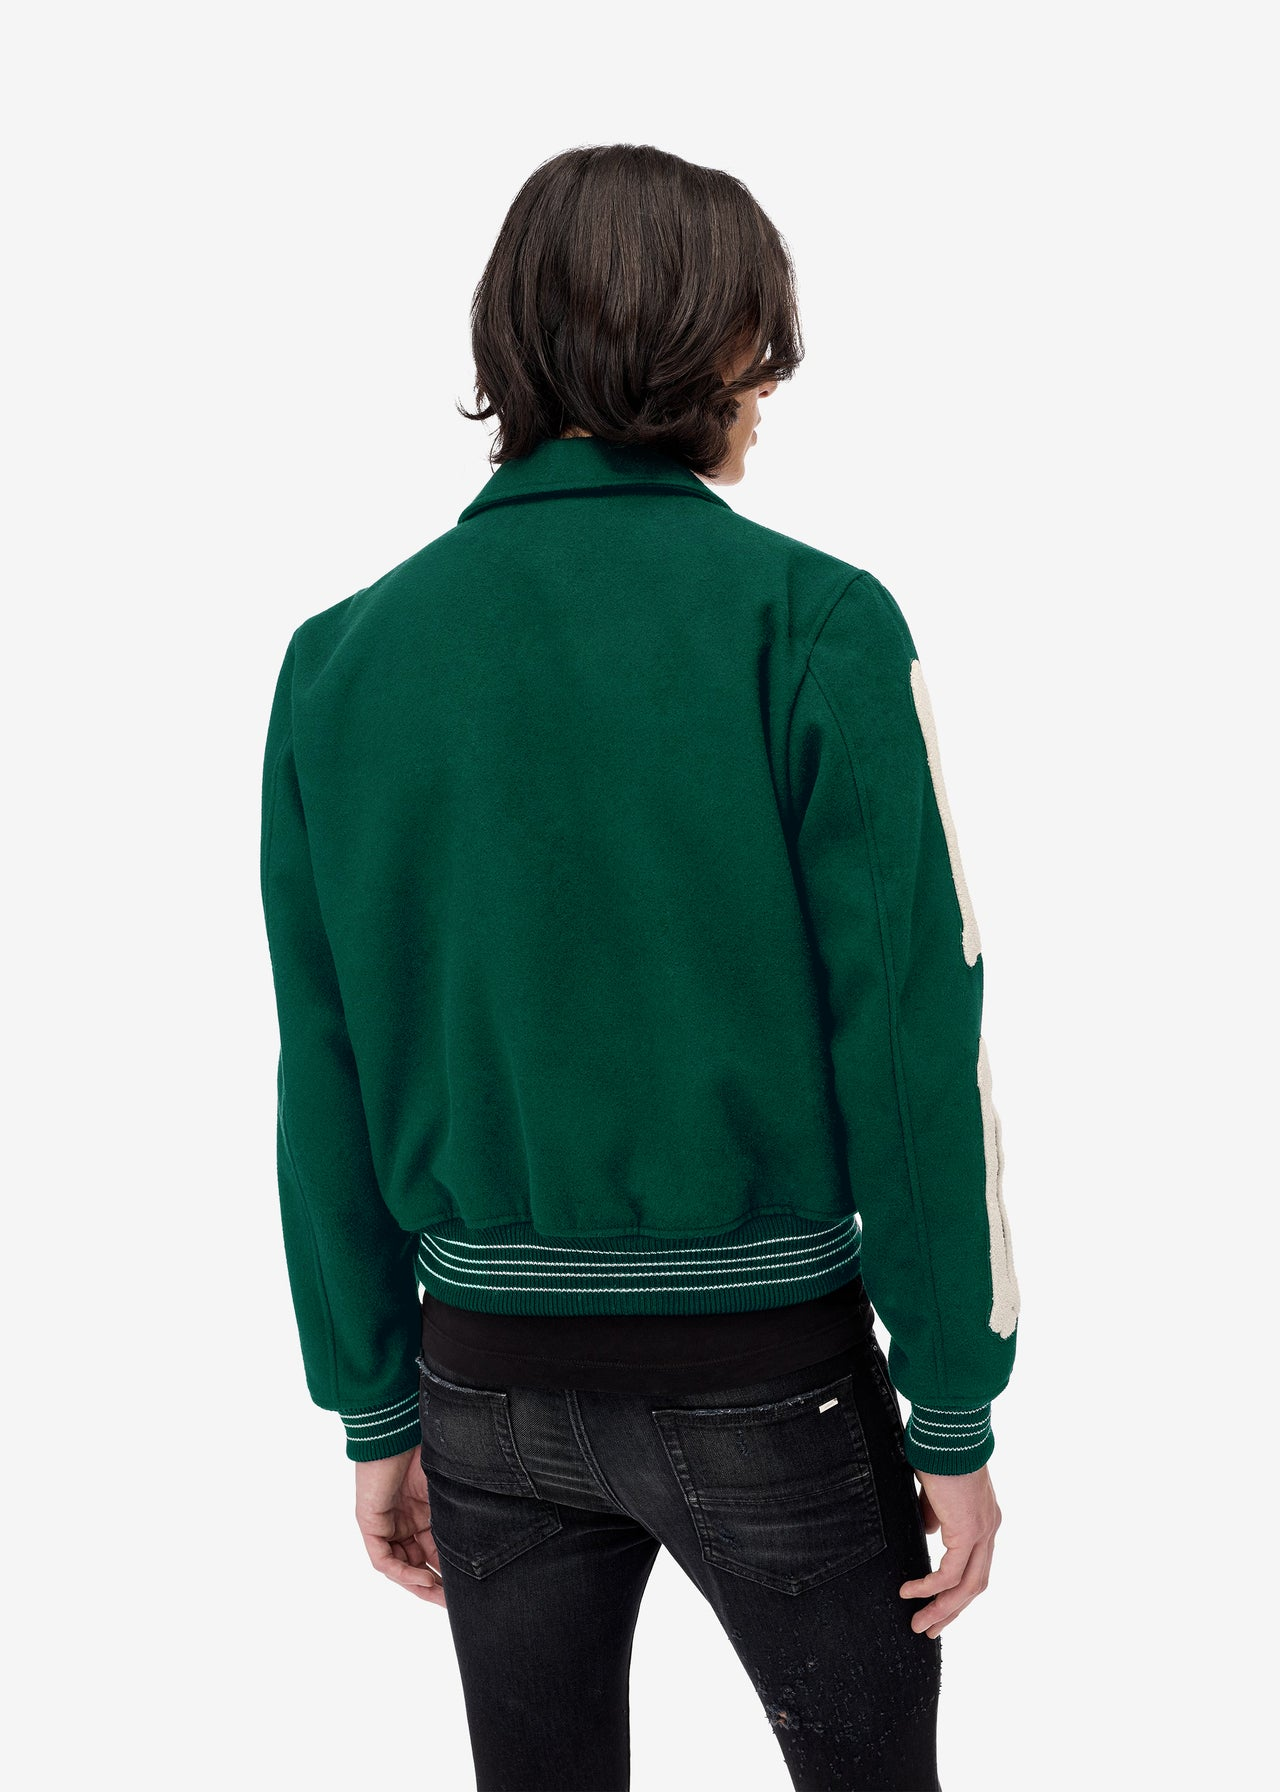 BONES VARSITY JACKET - TENNIS GREEN